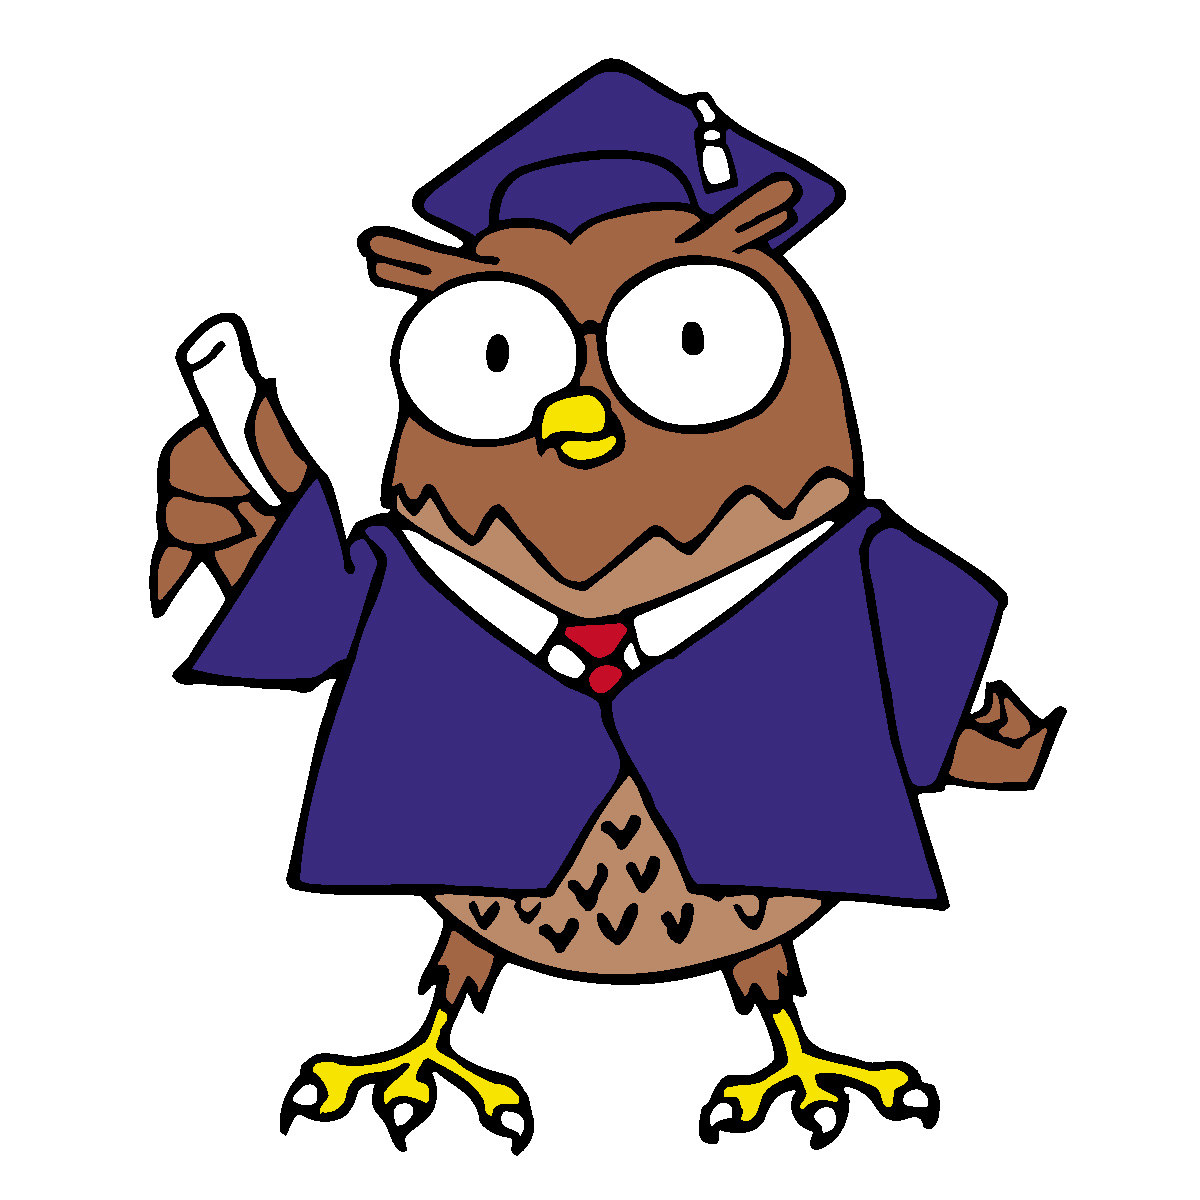 University Clip Art University Clipart Owlgrad Jpg